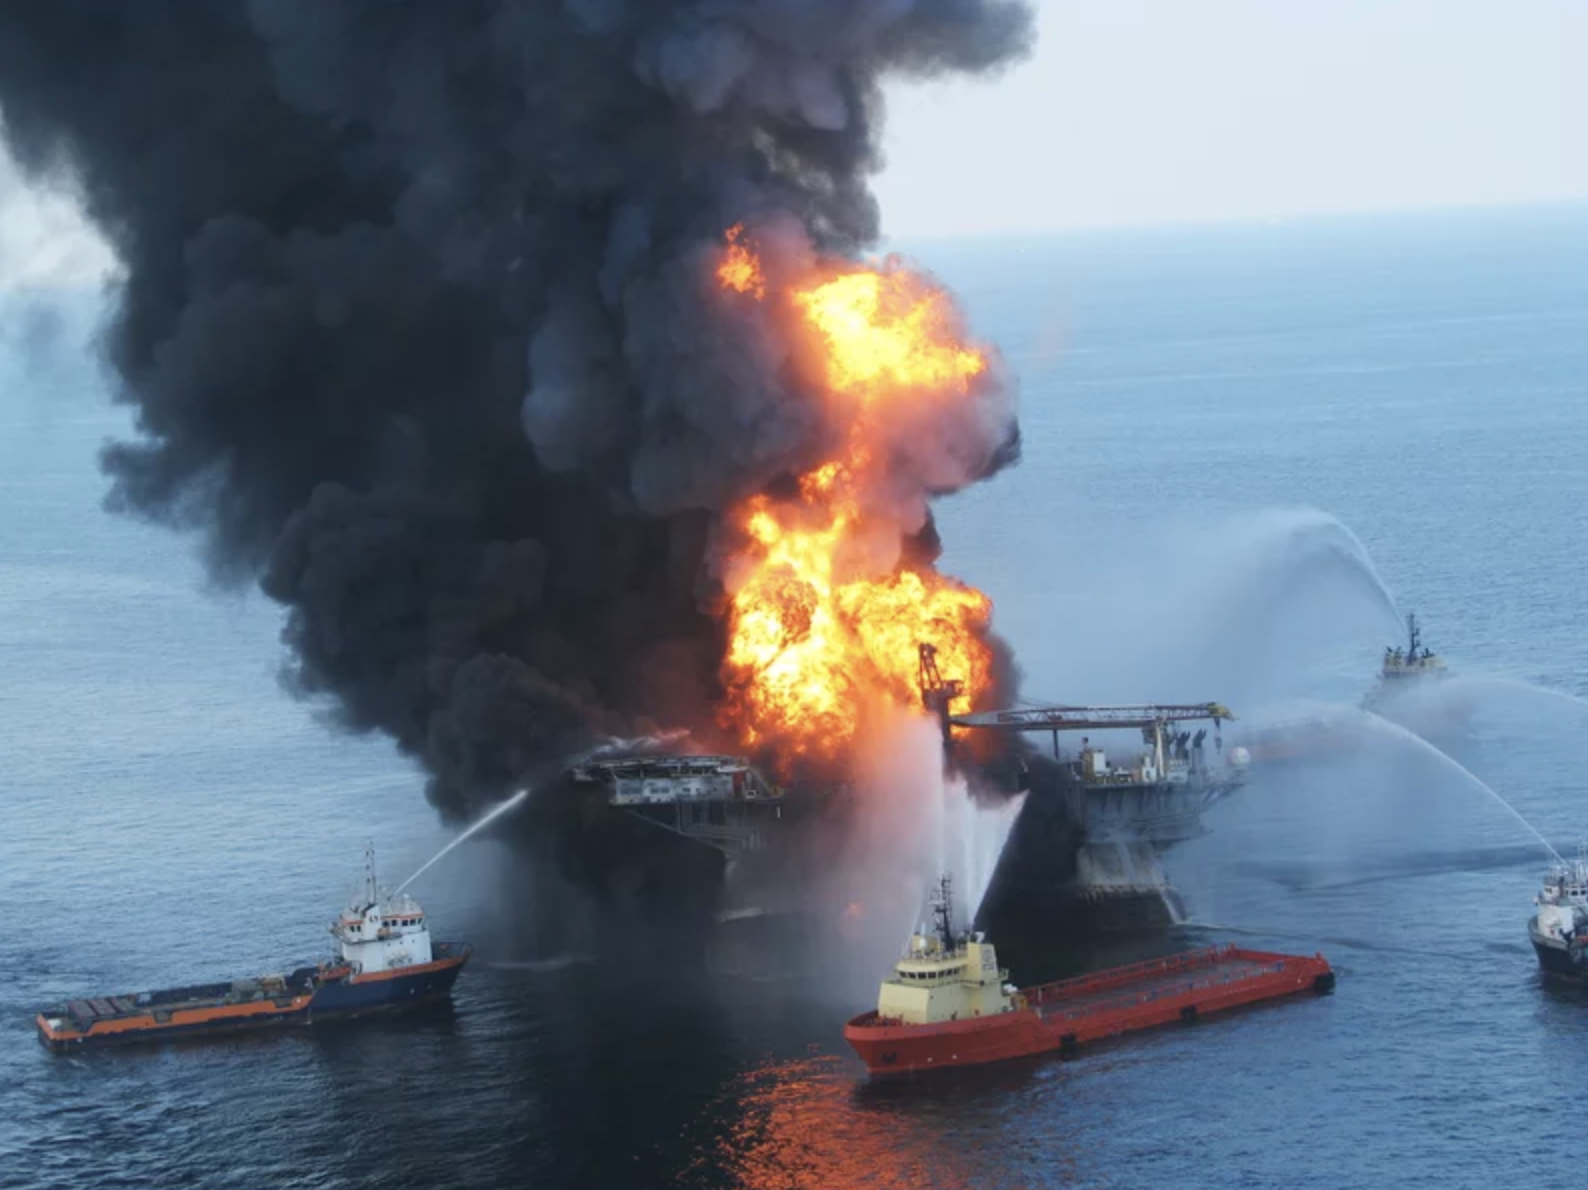 Deepwater Horizon oil rig. Credit: U.S Coast Guard